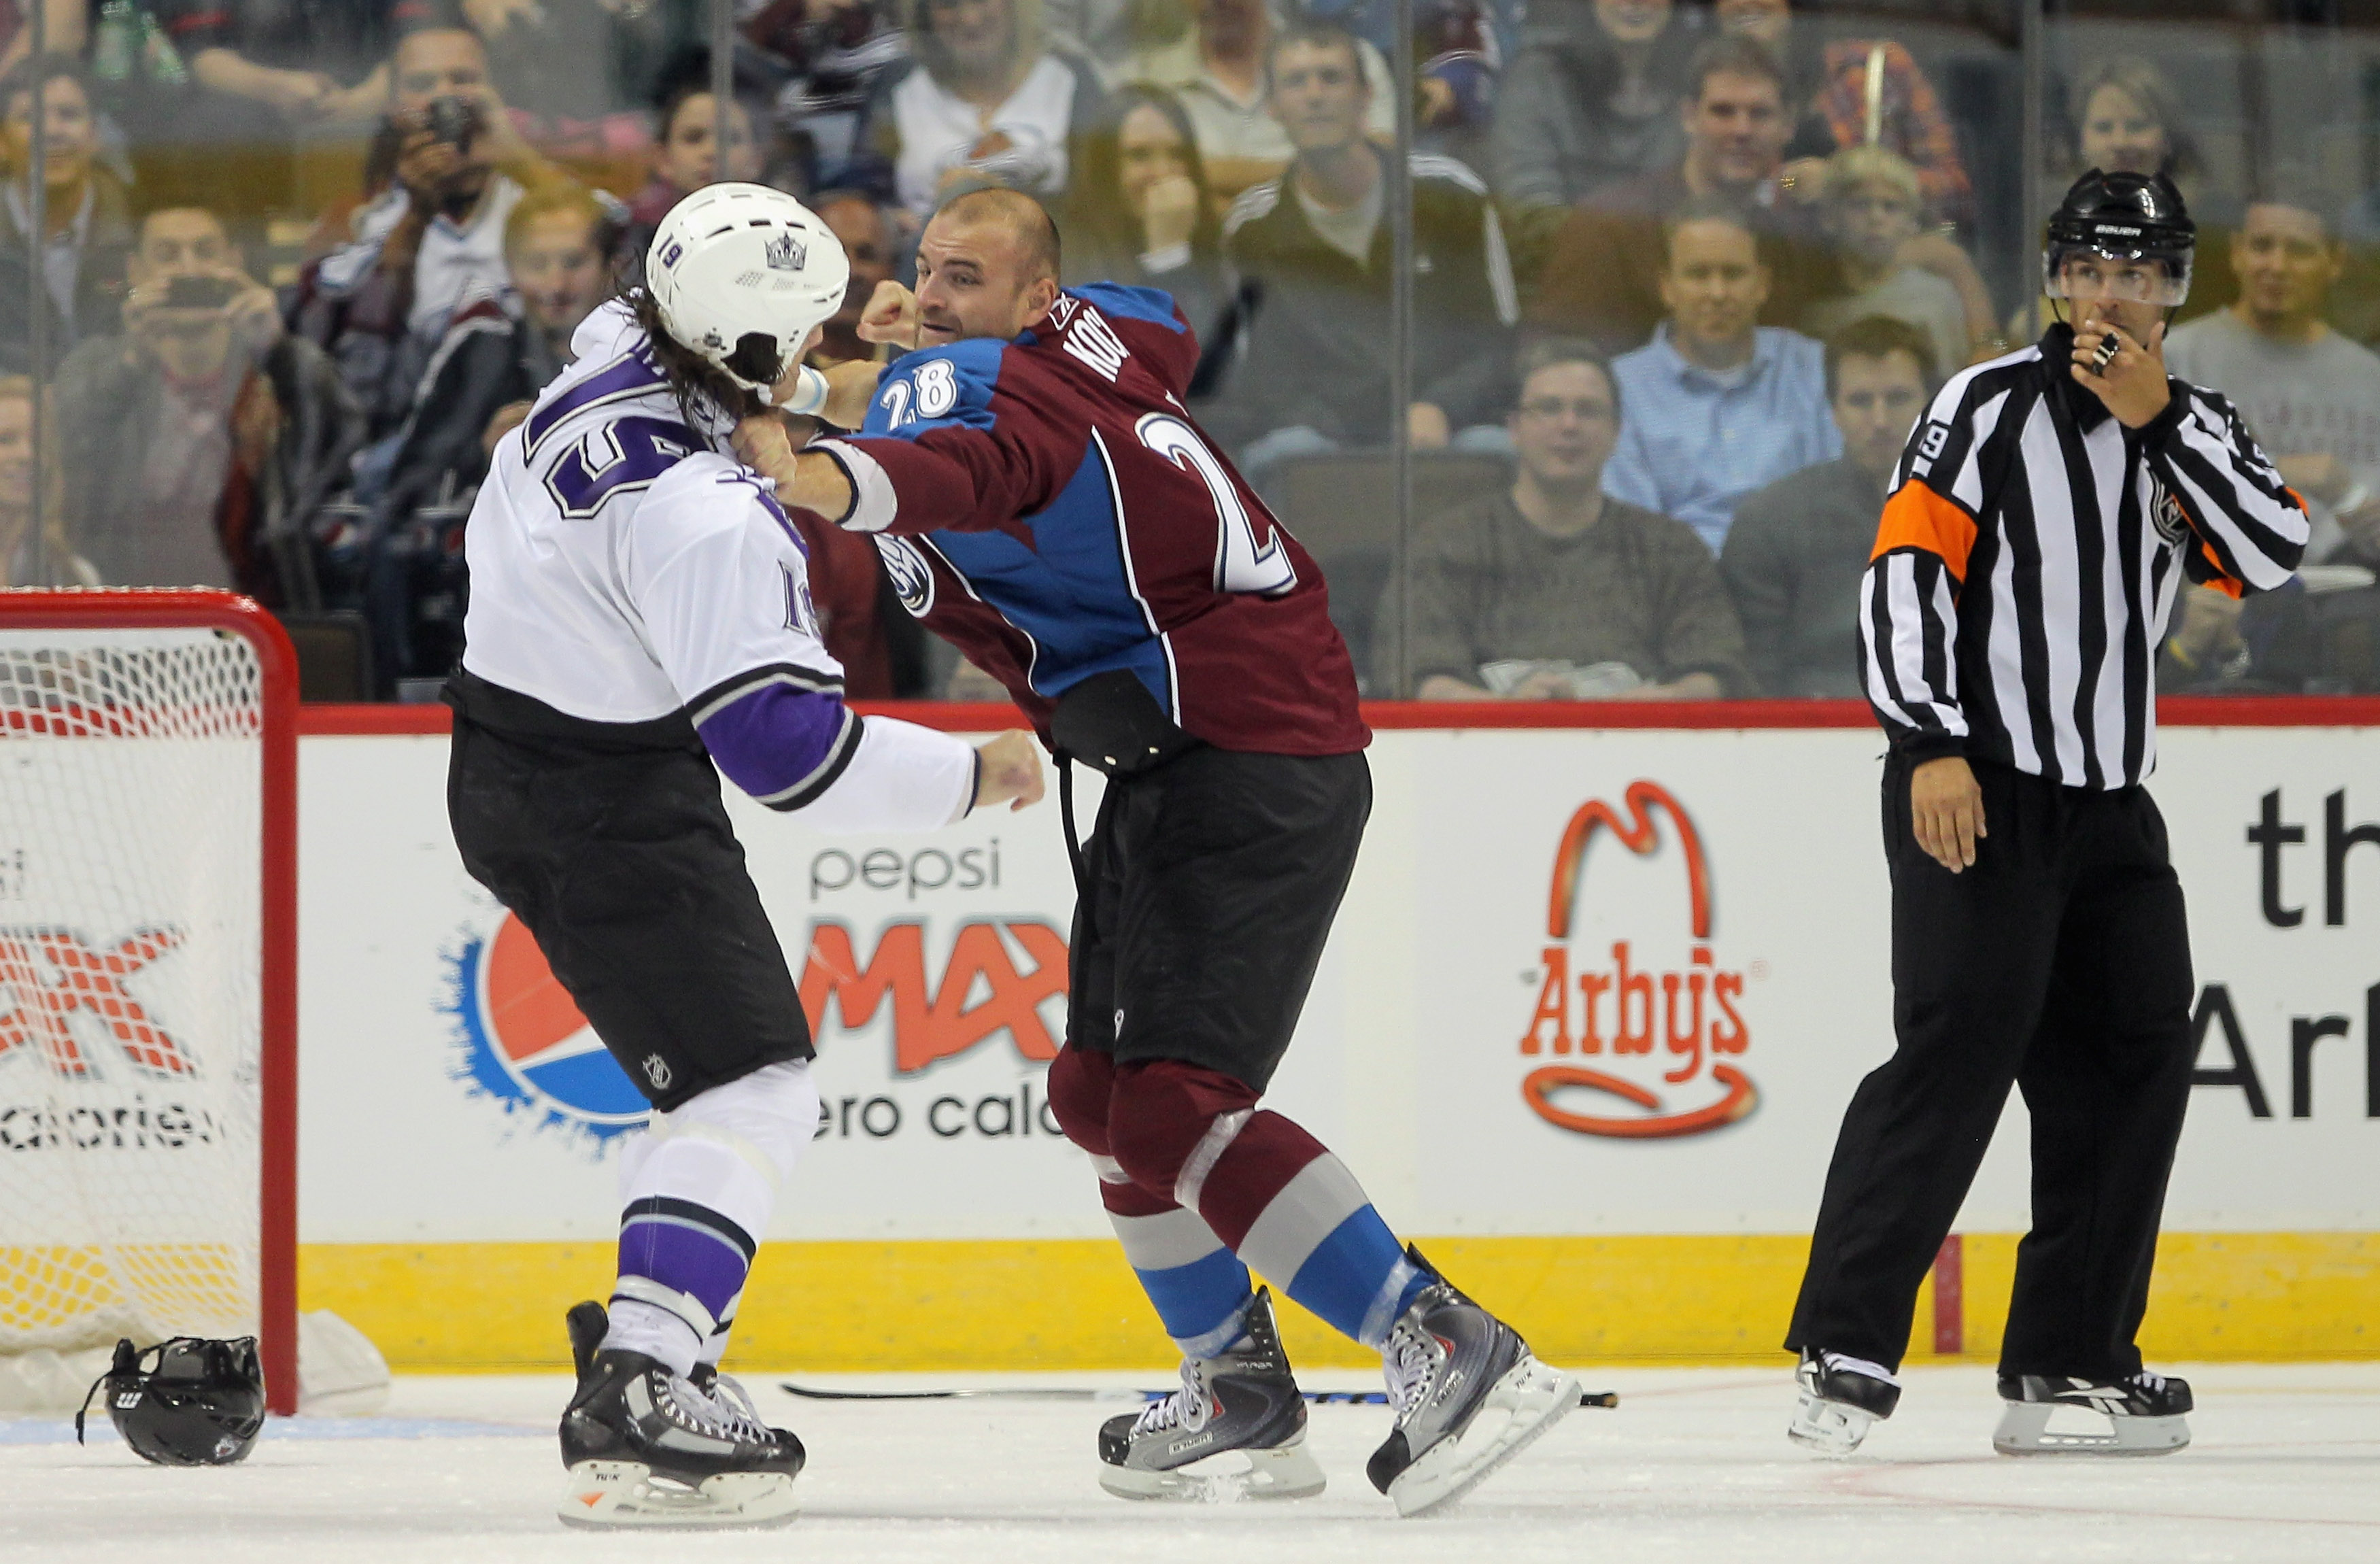 DENVER - SEPTEMBER 22:  John Zeiler #13 of the Los Angeles Kings and David Koci #28 of the Colorado Avalanche engage in a fight as referee Ghislain Hebert watches during preseason NHL action at the Pepsi Center on September 22, 2010 in Denver, Colorado. T